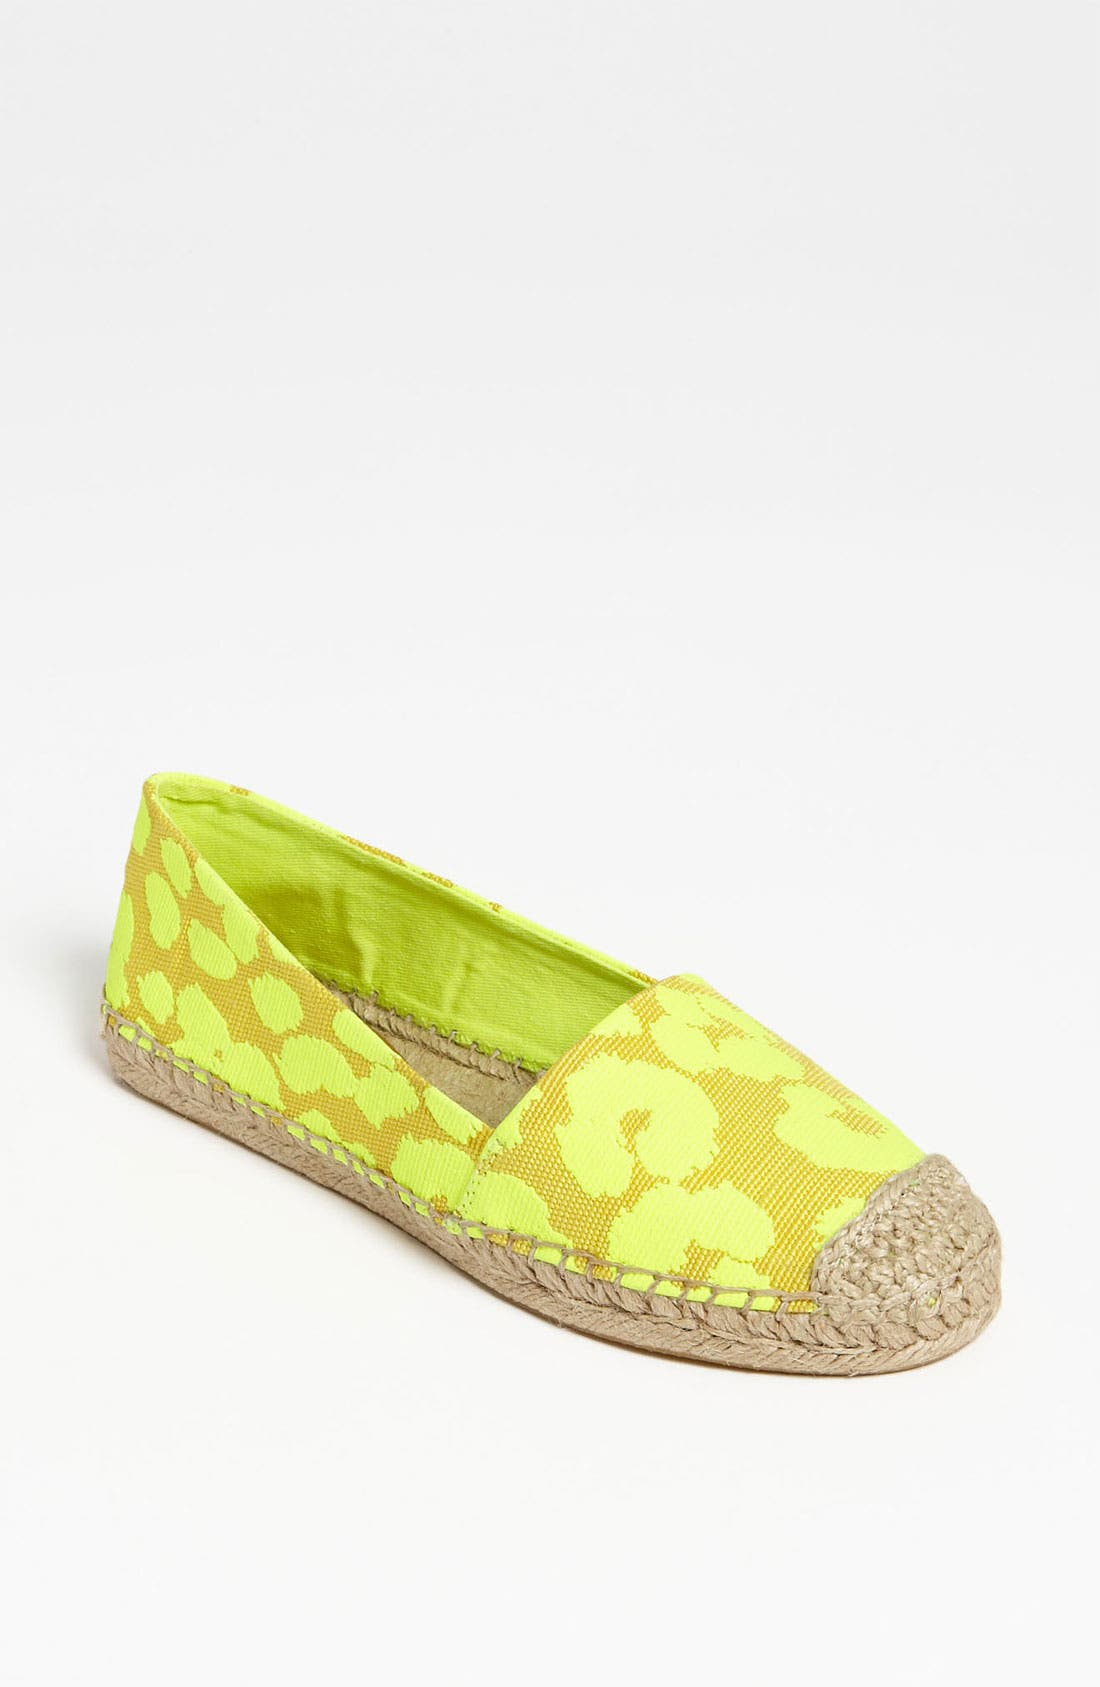 Alternate Image 1 Selected - Juicy Couture 'Gigi' Espadrille Flat